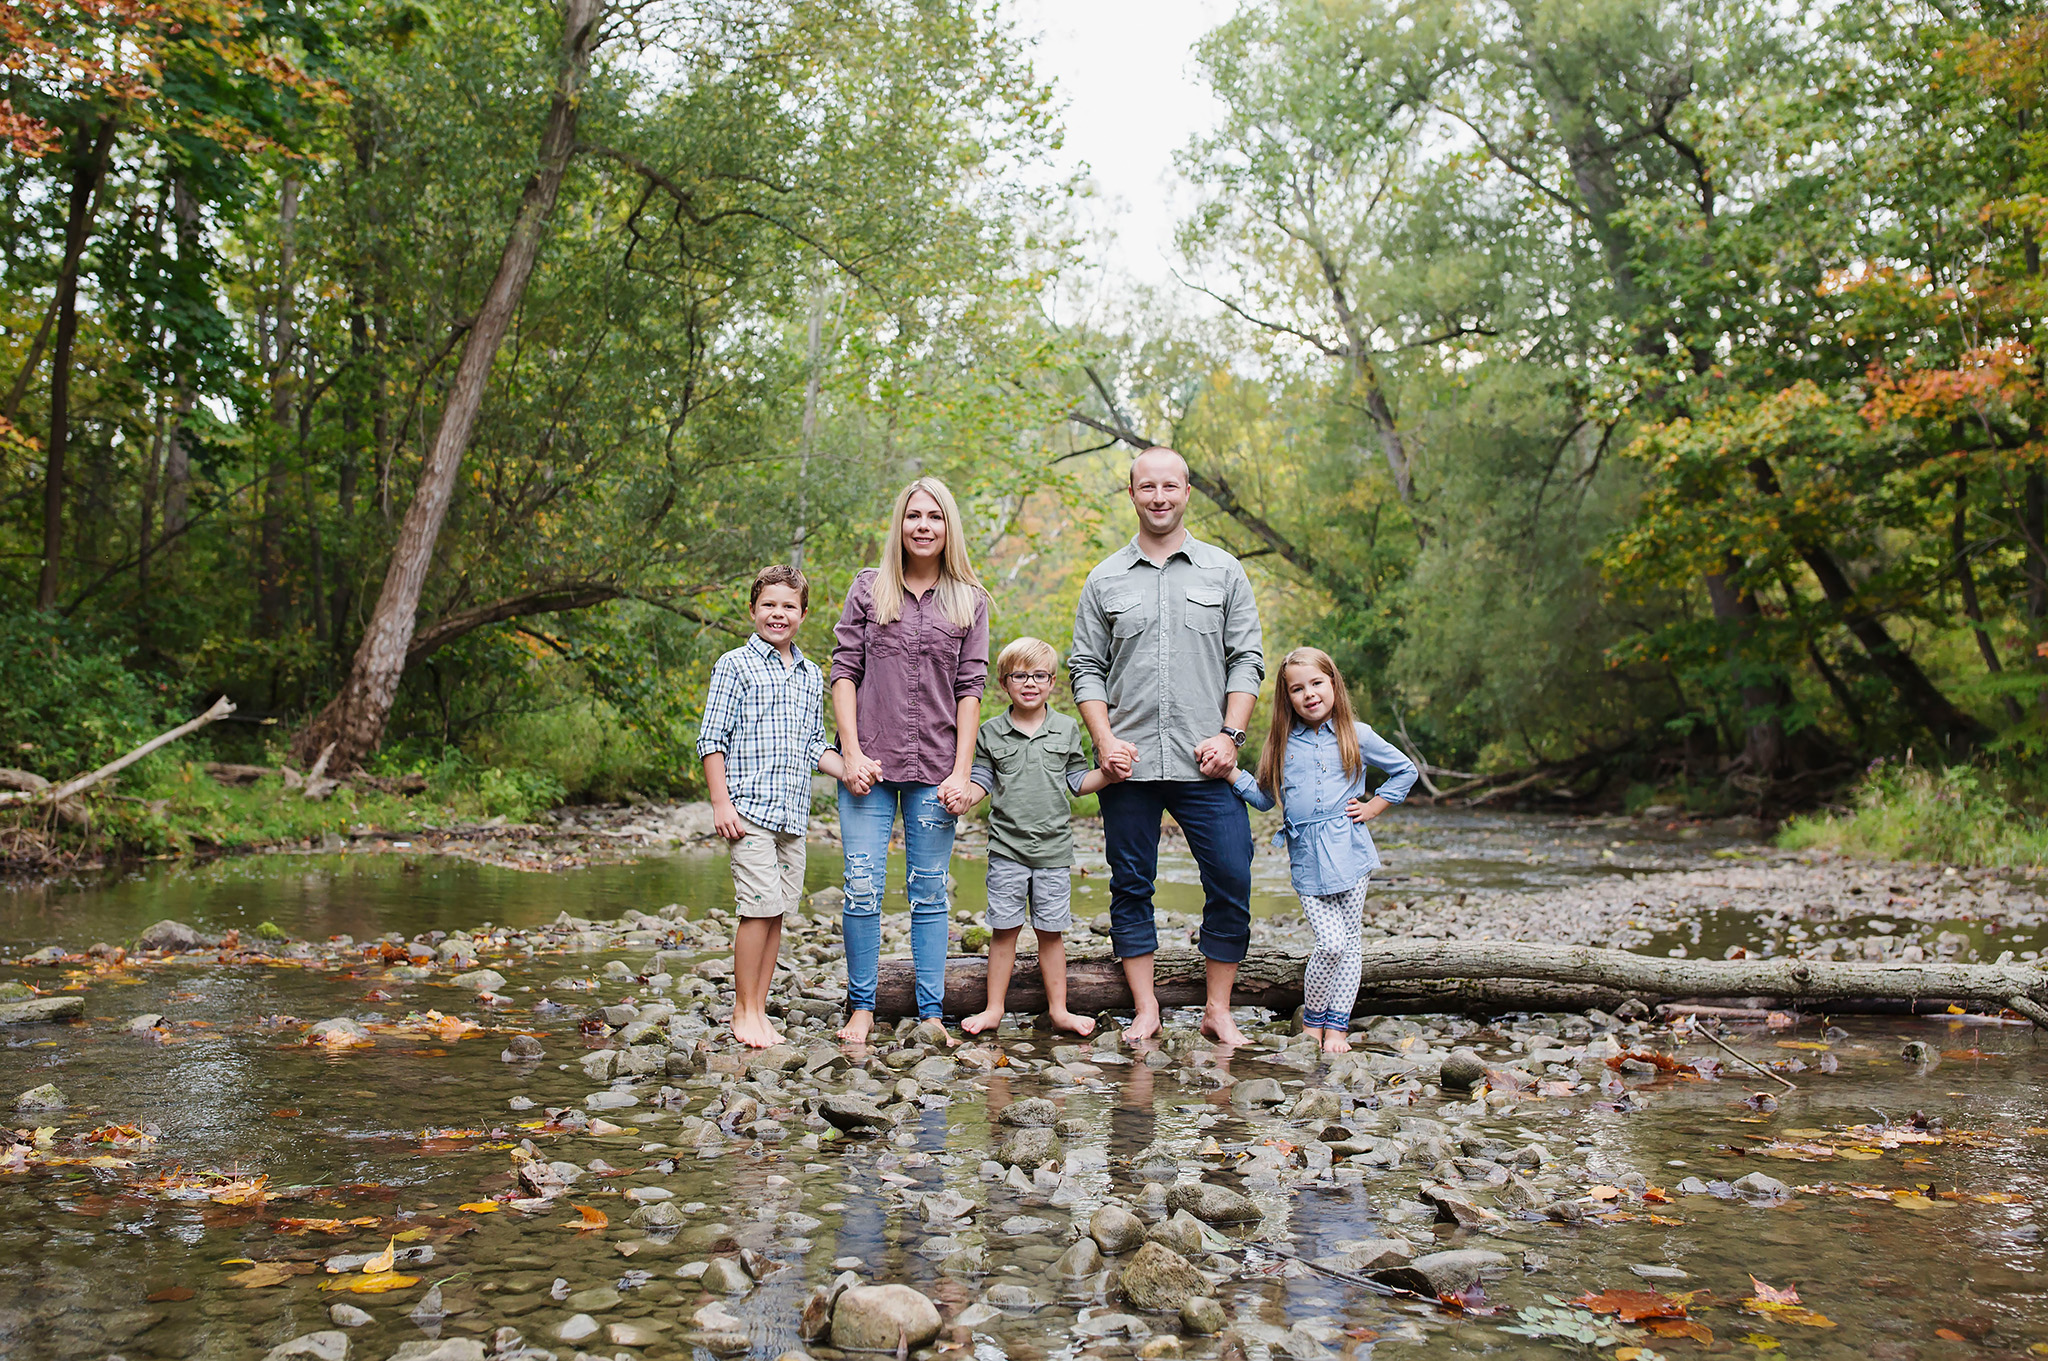 london_ontario_family_photographer-medway_creek-raw_footage_photography001.jpg